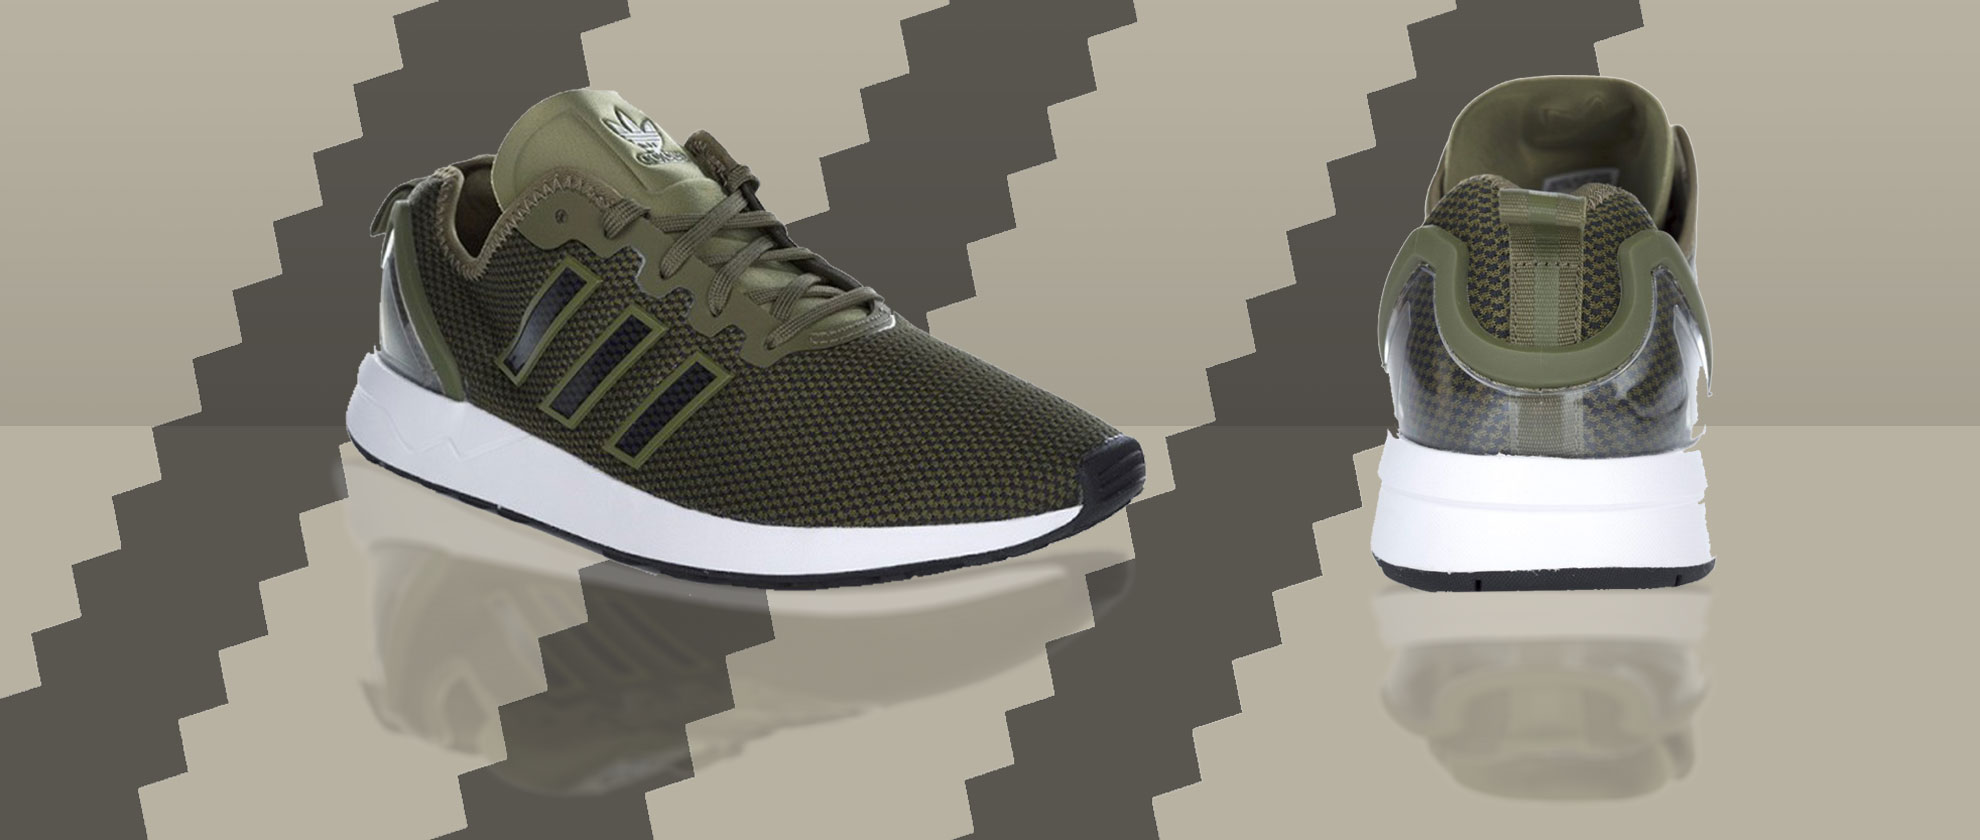 Staff Pick: Adidas Olive Green ZX Flux ADV Trainers